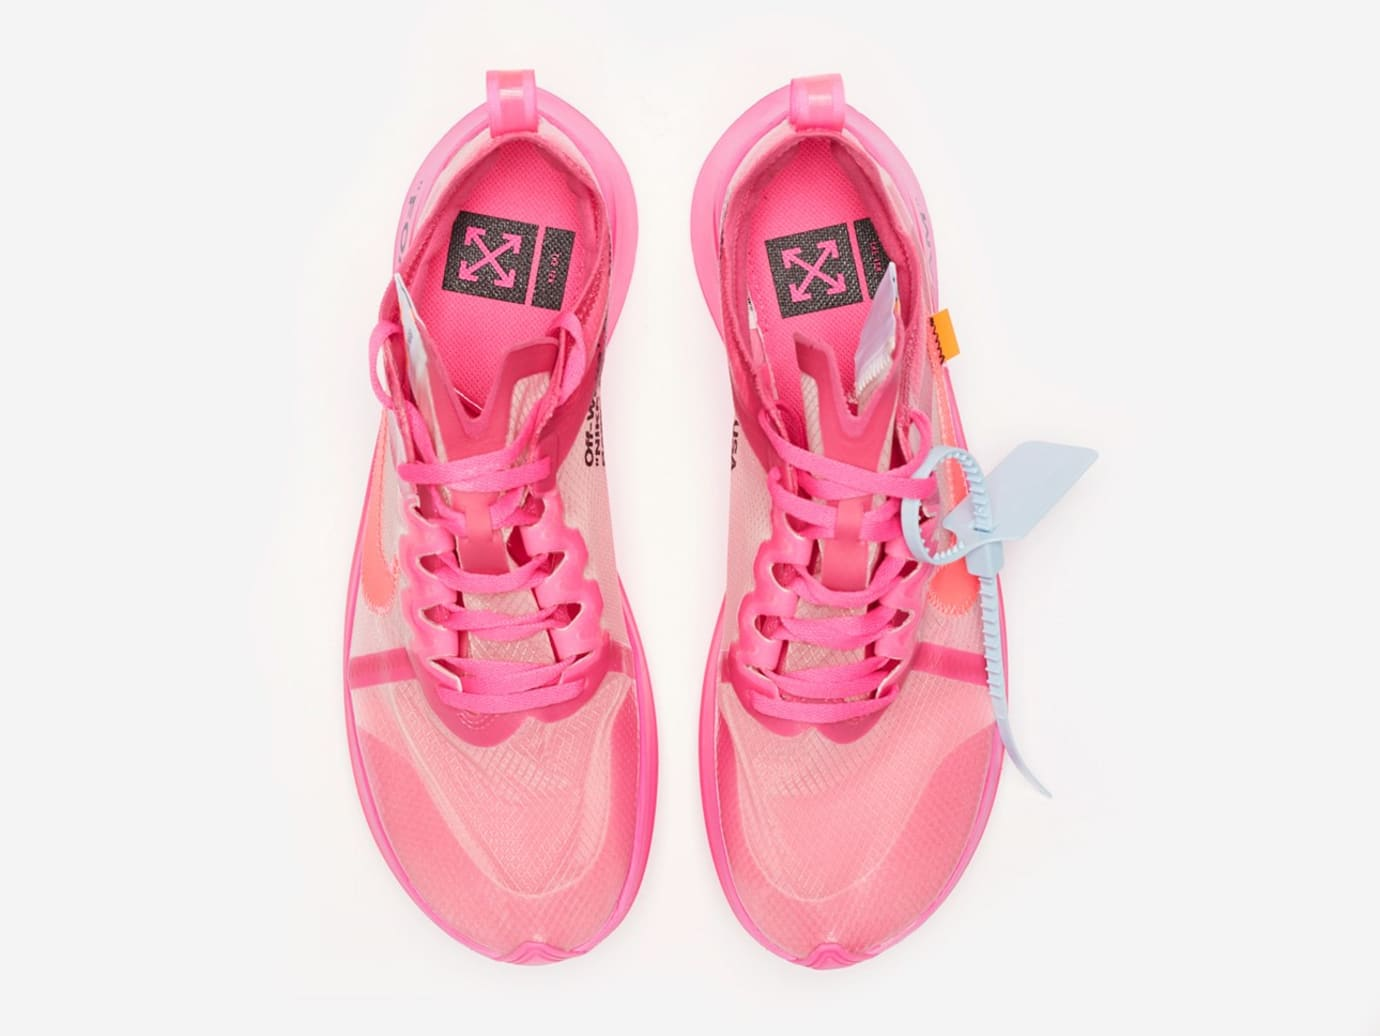 4be359875e1d Image via Sneakersnstuff Off-White x Nike Zoom Fly SP AJ4588-600  Tulip Pink  Racer